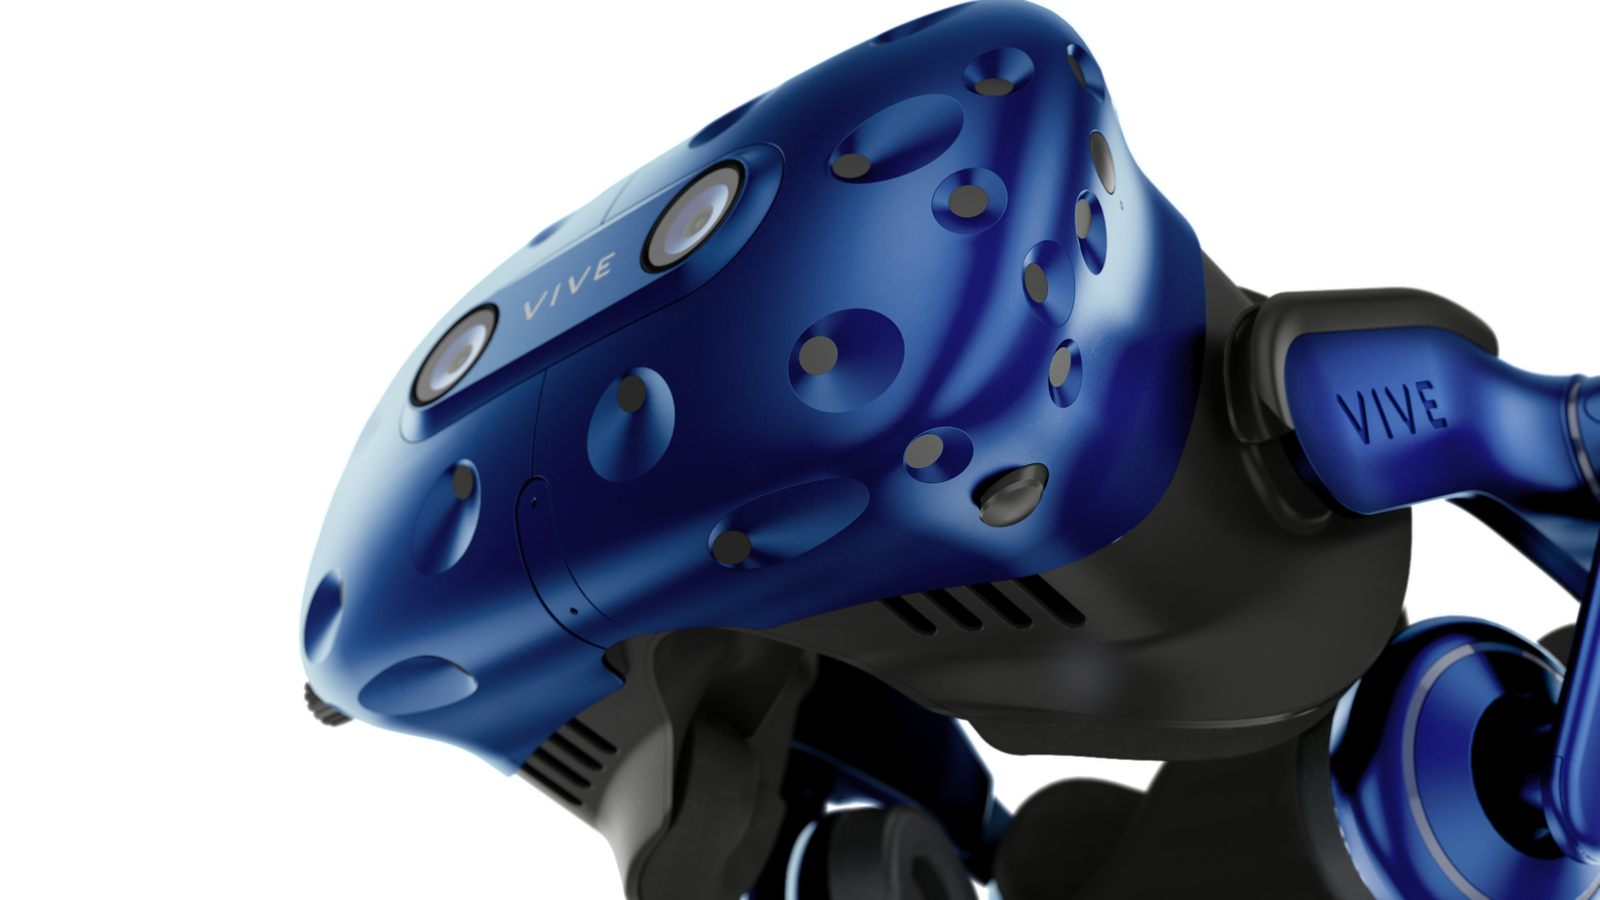 Copy of Vive Pro Up Close Lower Angle_preview